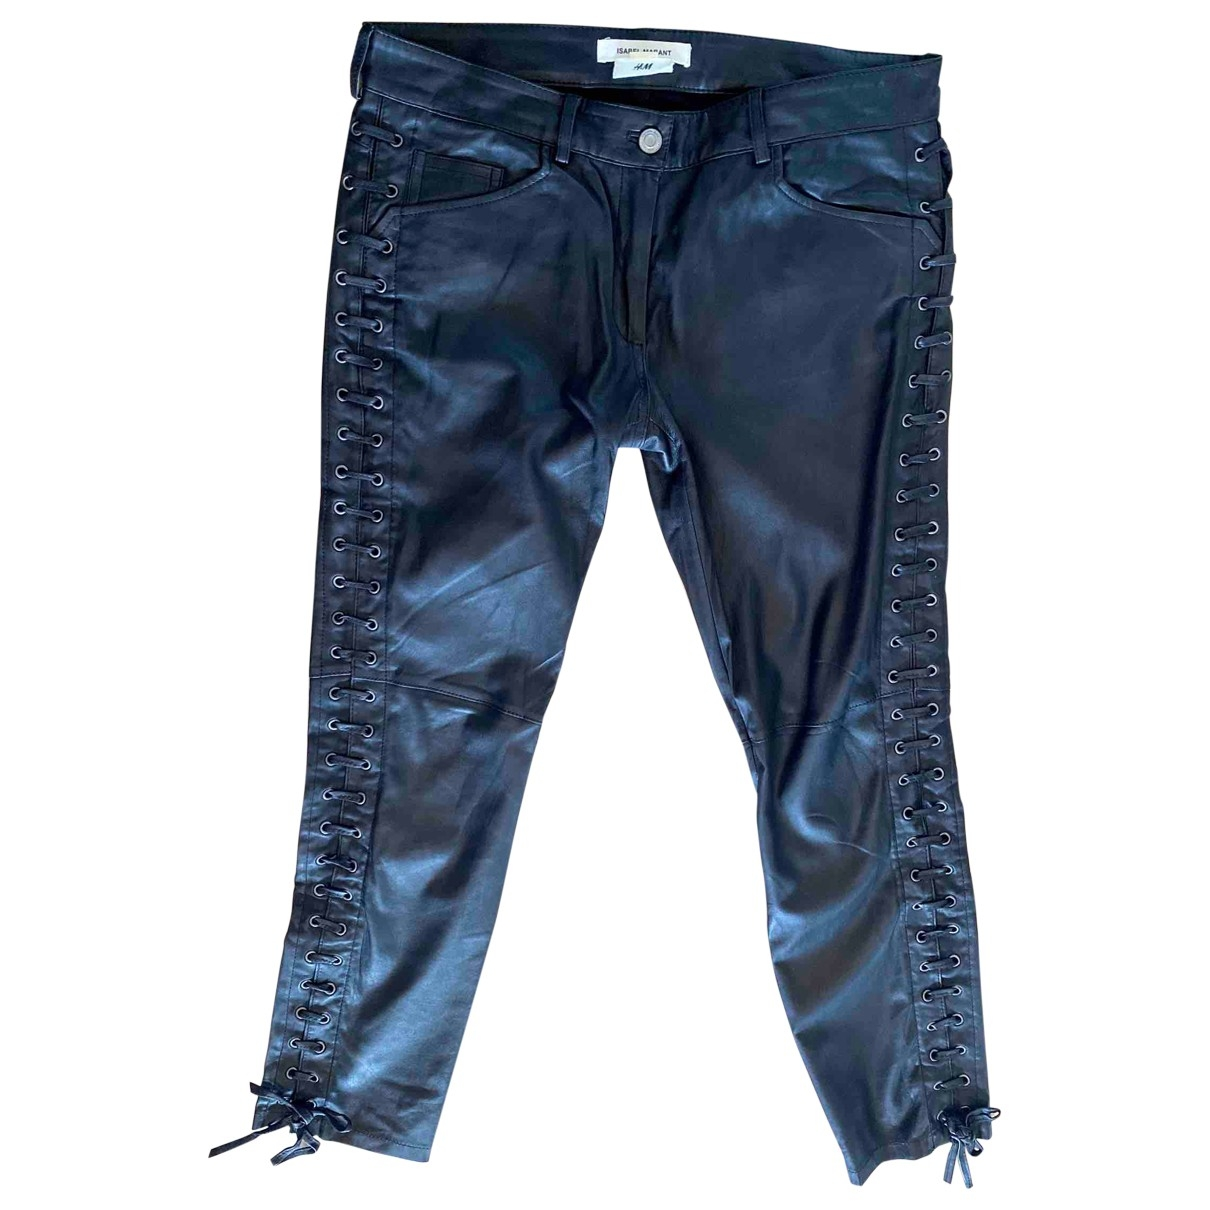 Isabel Marant Pour H&m \N Black Leather Trousers for Women 40 FR